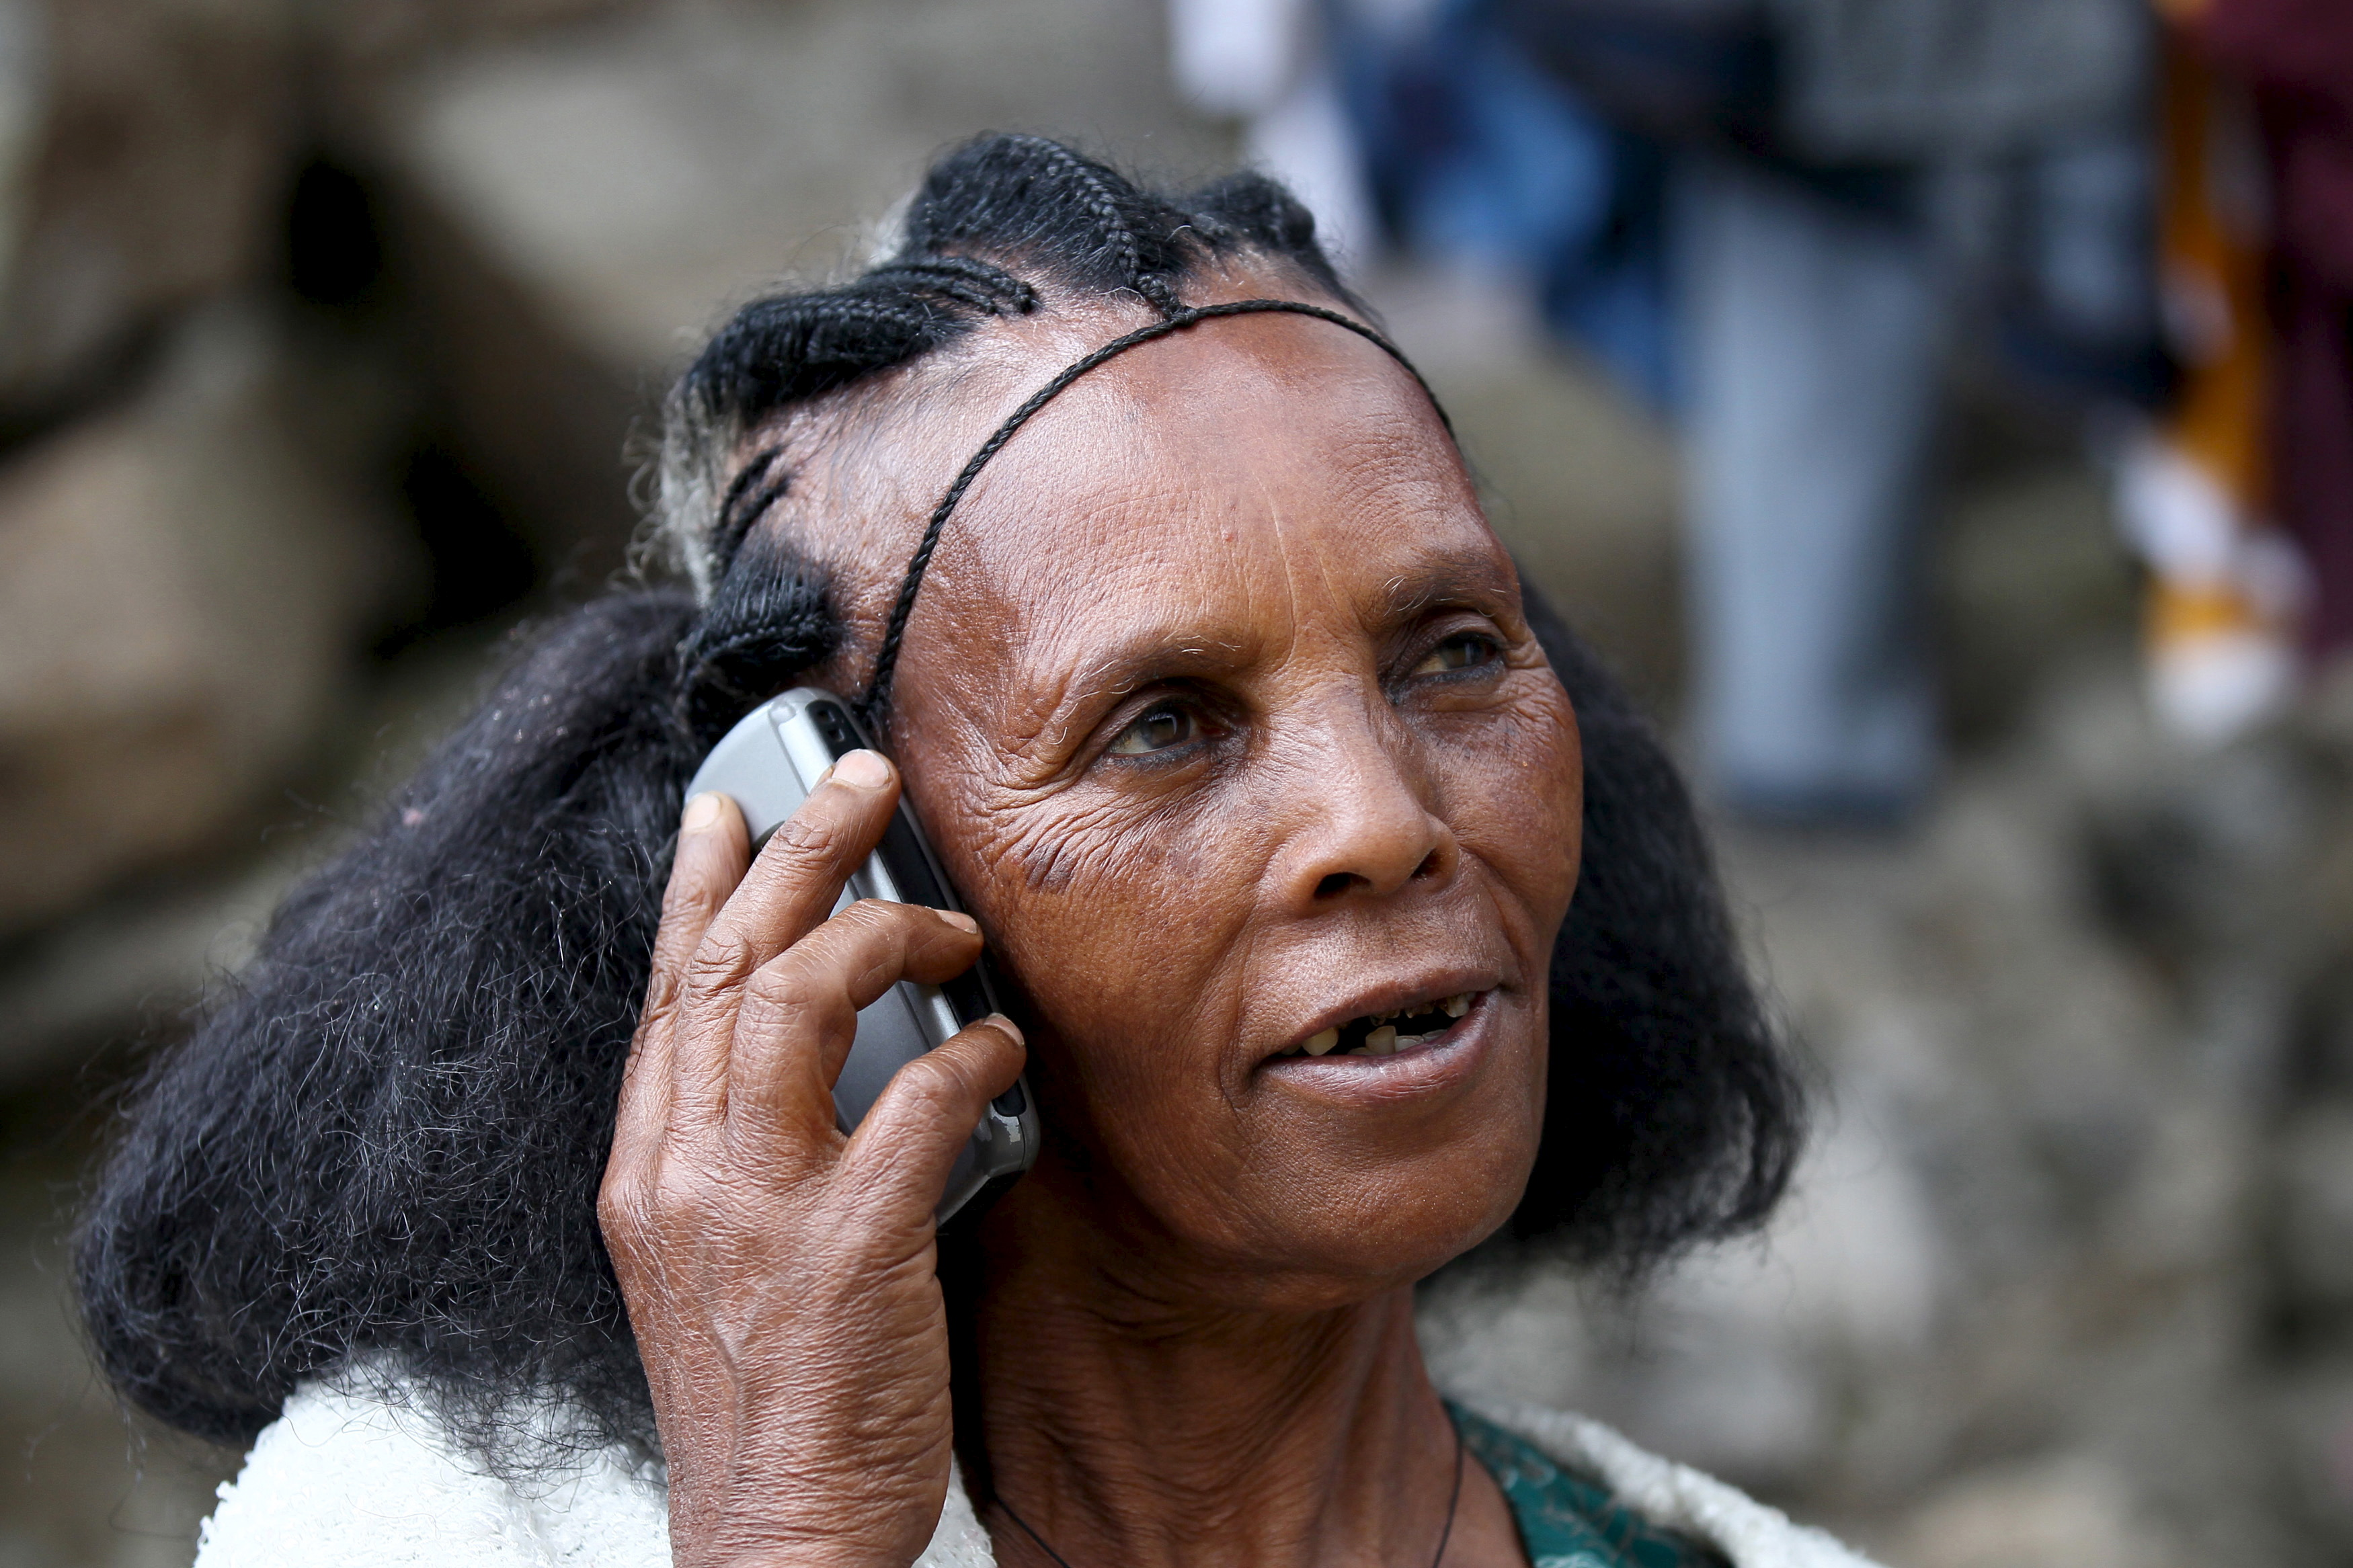 A woman makes a call on her mobile phone in Ethiopia's capital, Addis Ababa, Nov. 9, 2015. Ethiopia's state-run telecoms monopoly will launch a tender in December or January to help the company upgrade infrastructure and expand its mobile phone coverage by about 72 percent, the company's chief executive said. (Reuters)